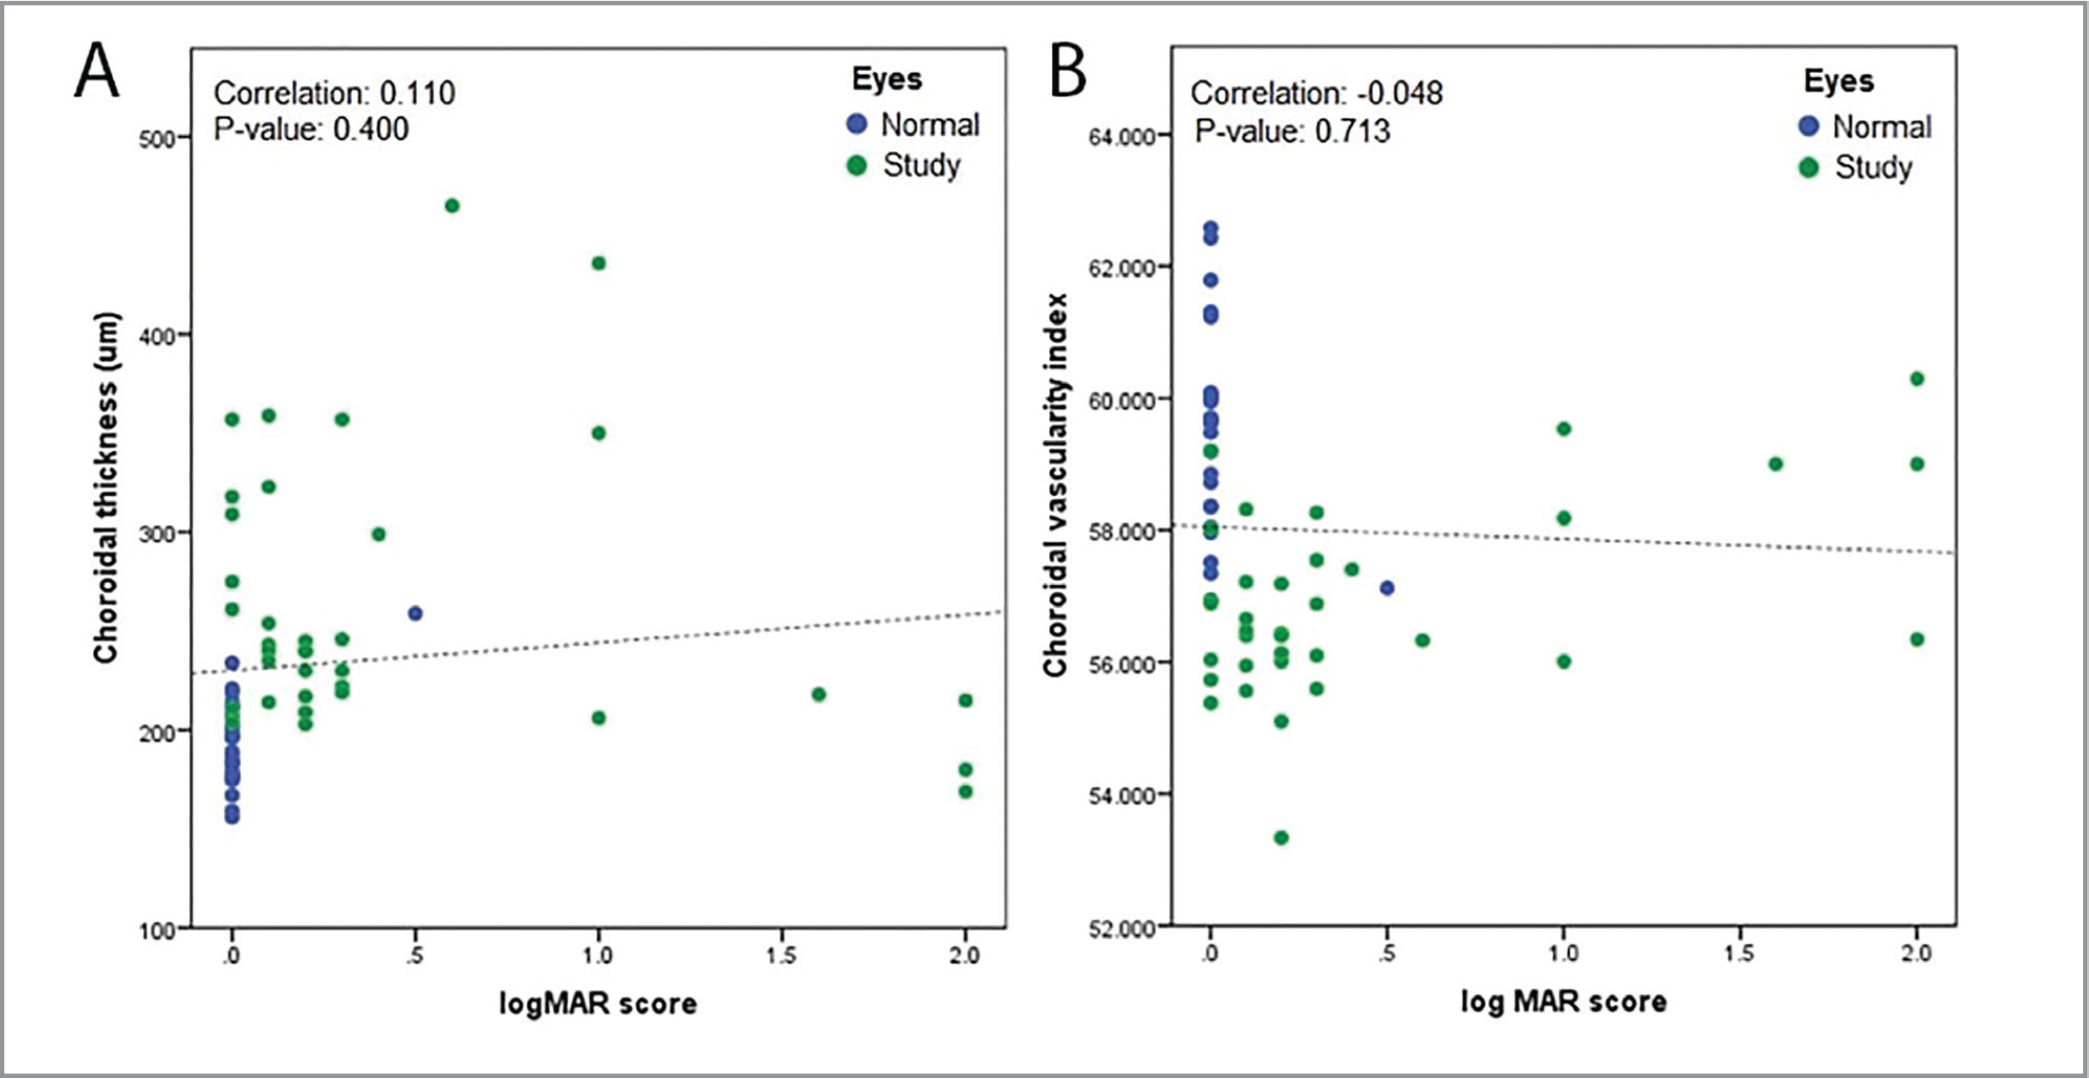 Scatter plots showing overall relationship of choroidal thickness (A) and choroidal vascularity index (B) with best-corrected visual acuity.